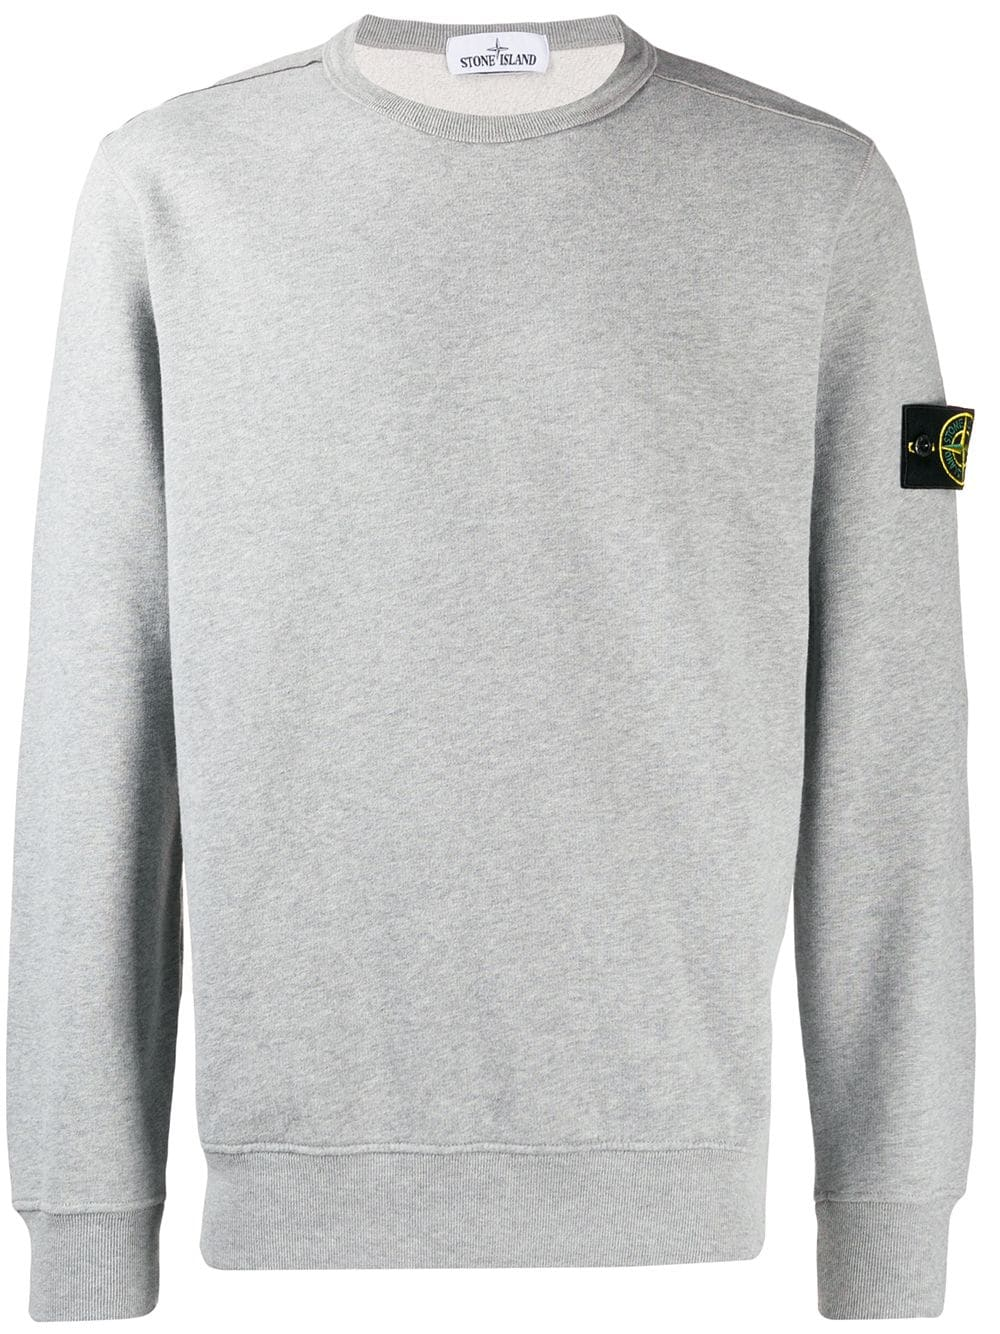 Ribbed Crew Neck Jumper In Grey Crew Neck Jumper Stone Island Island Outfit